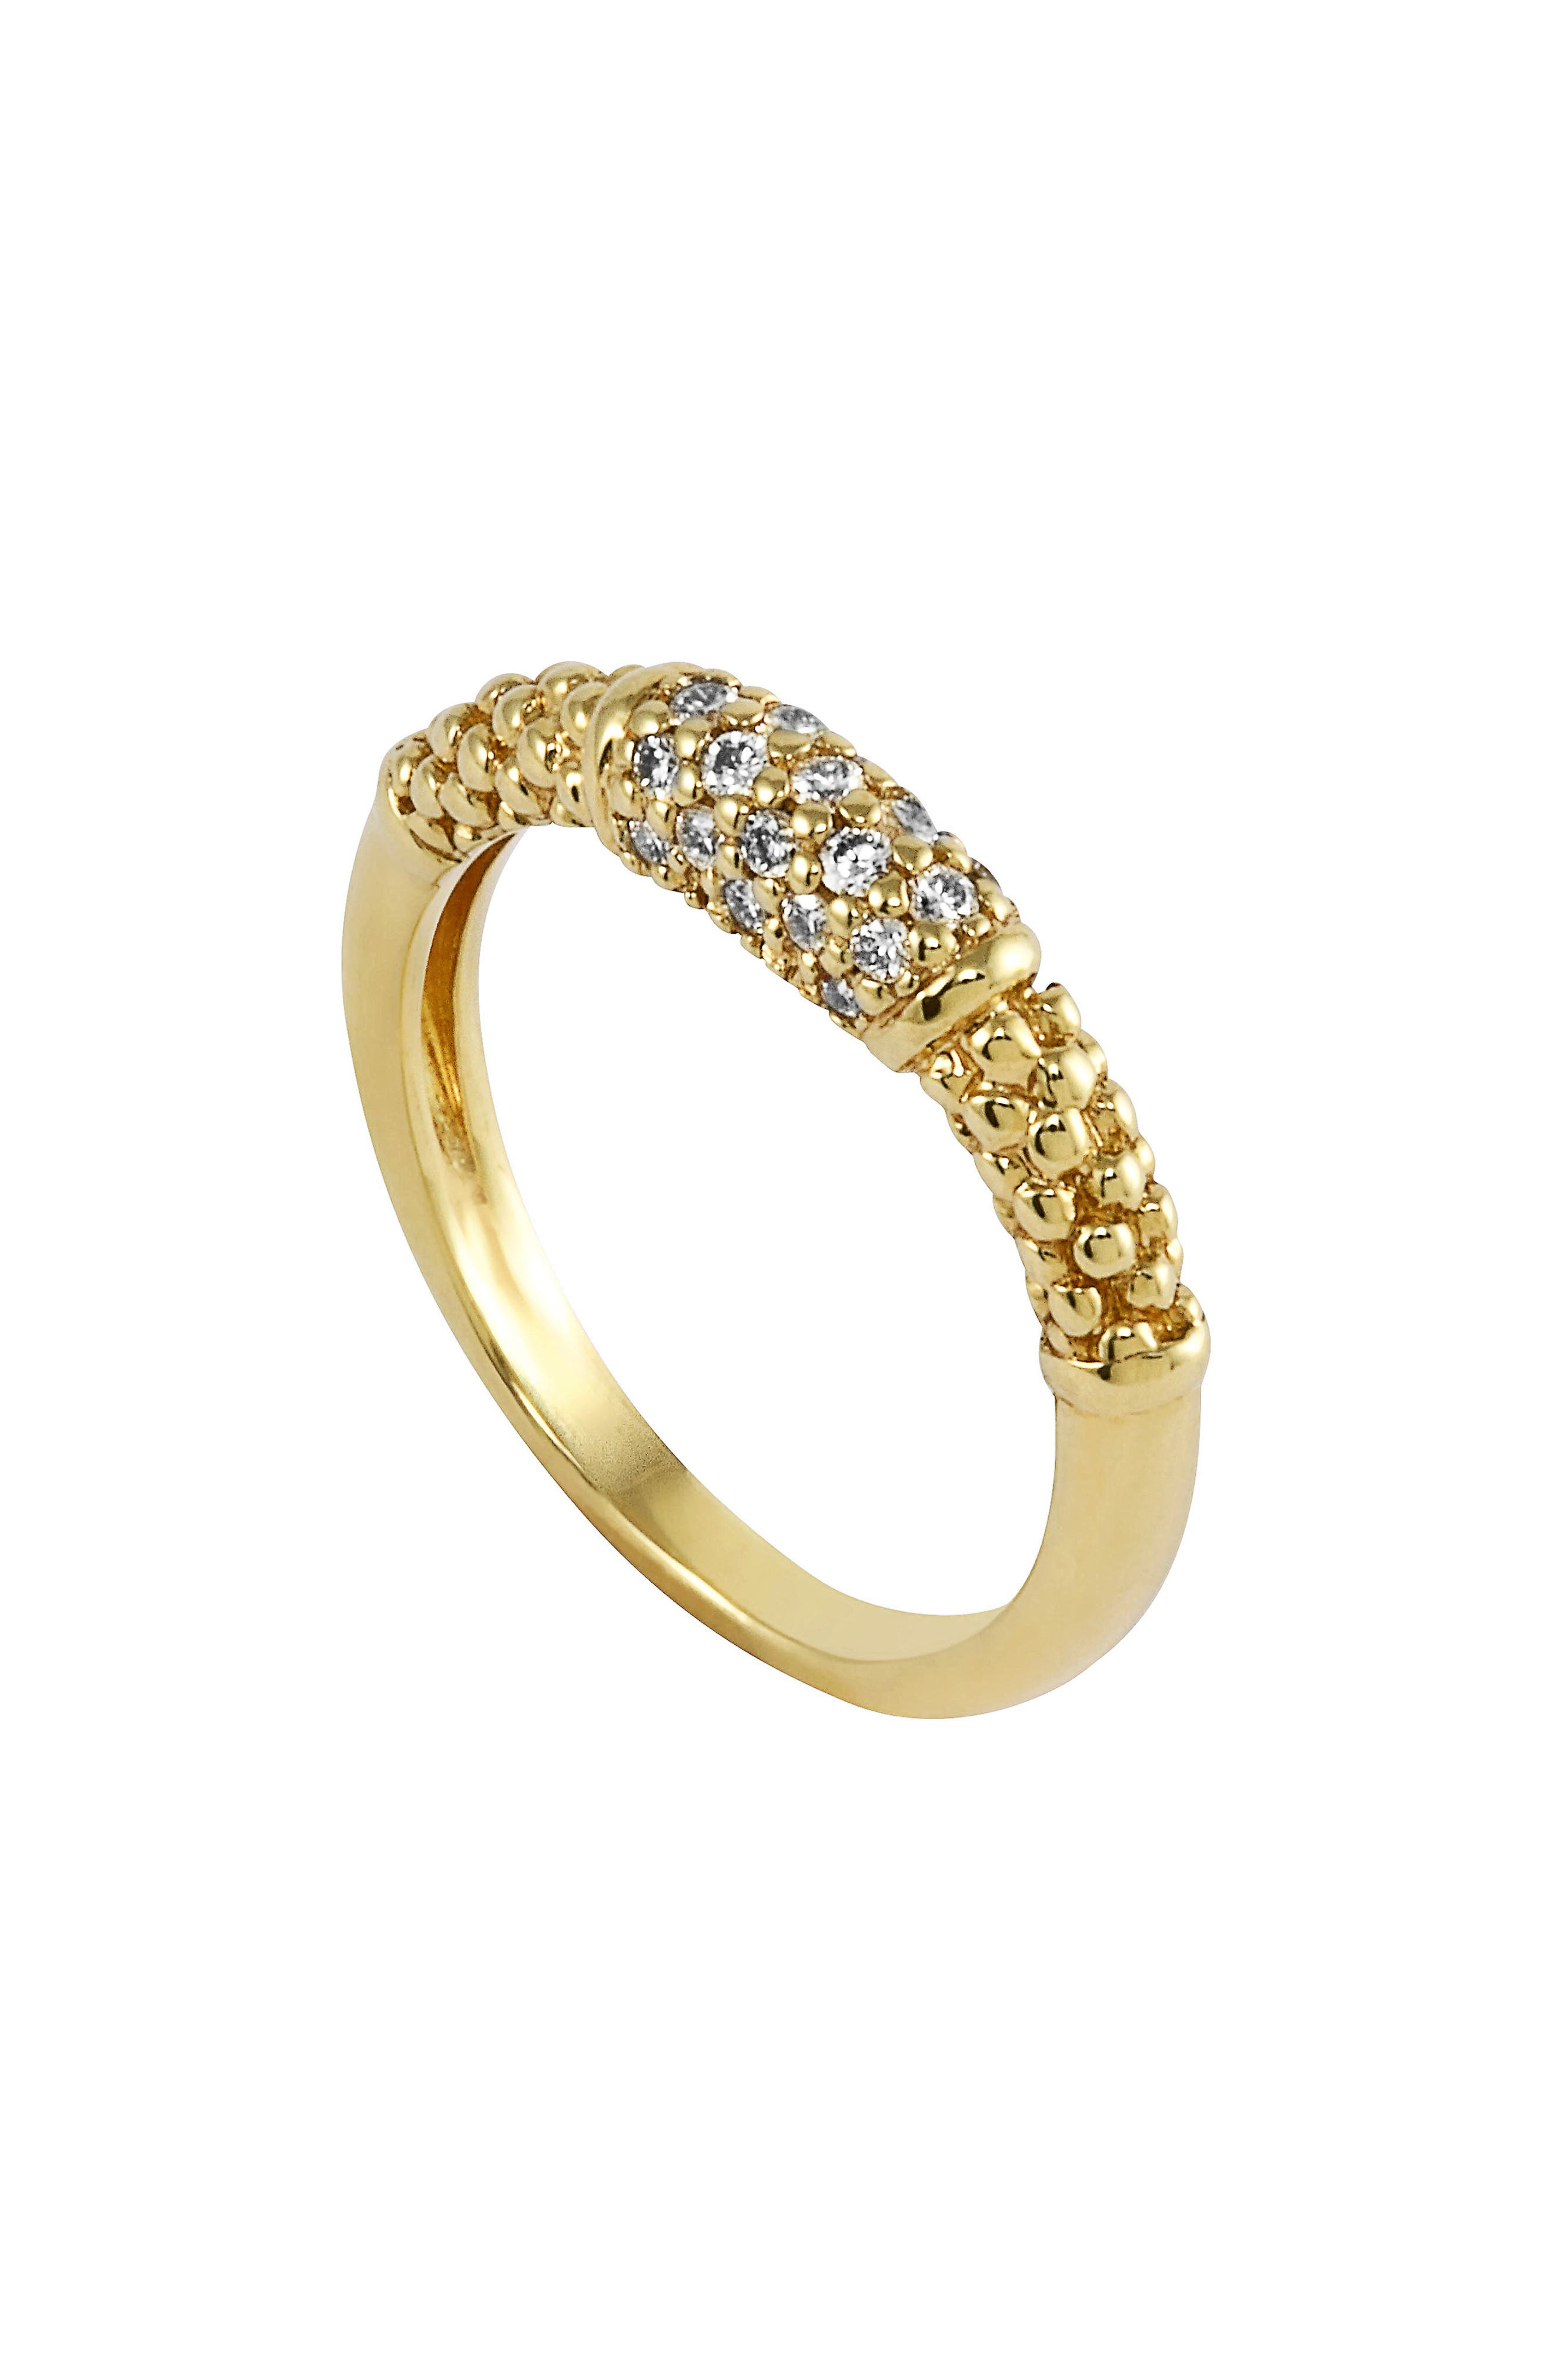 Caviar Diamond Ring,                         Main,                         color, GOLD